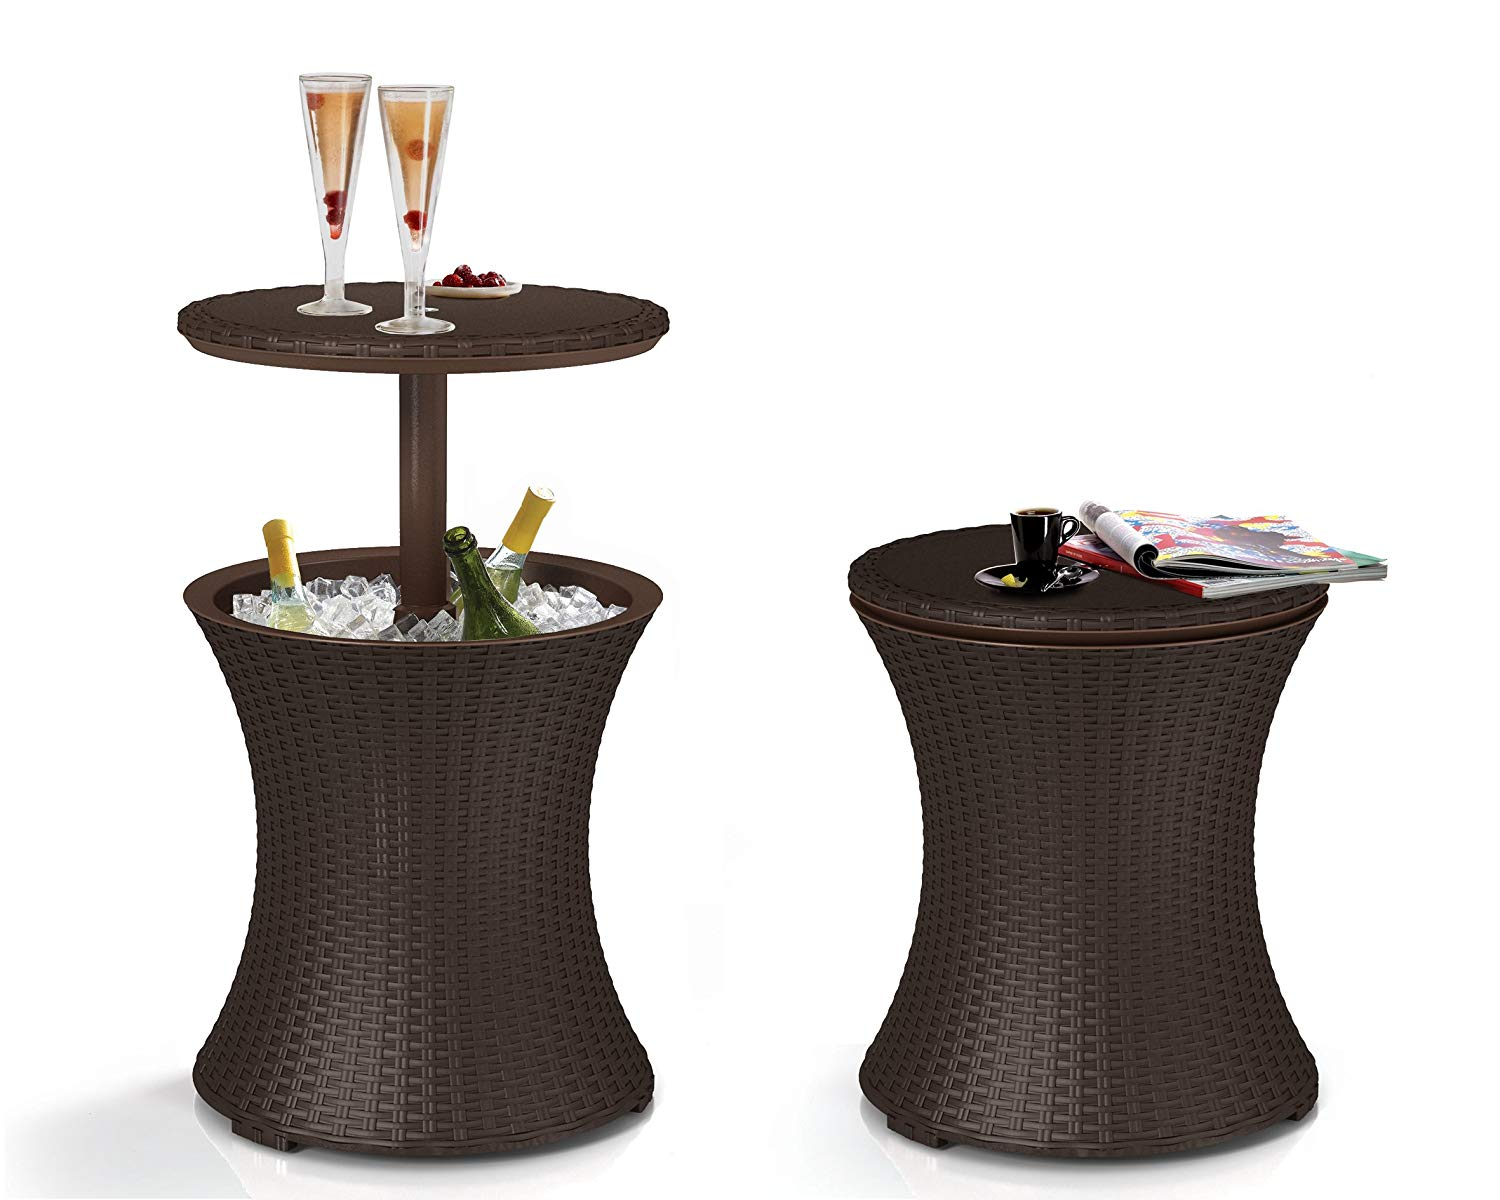 Keter Outdoor Cool Bar Patio Garden Table (Brown)